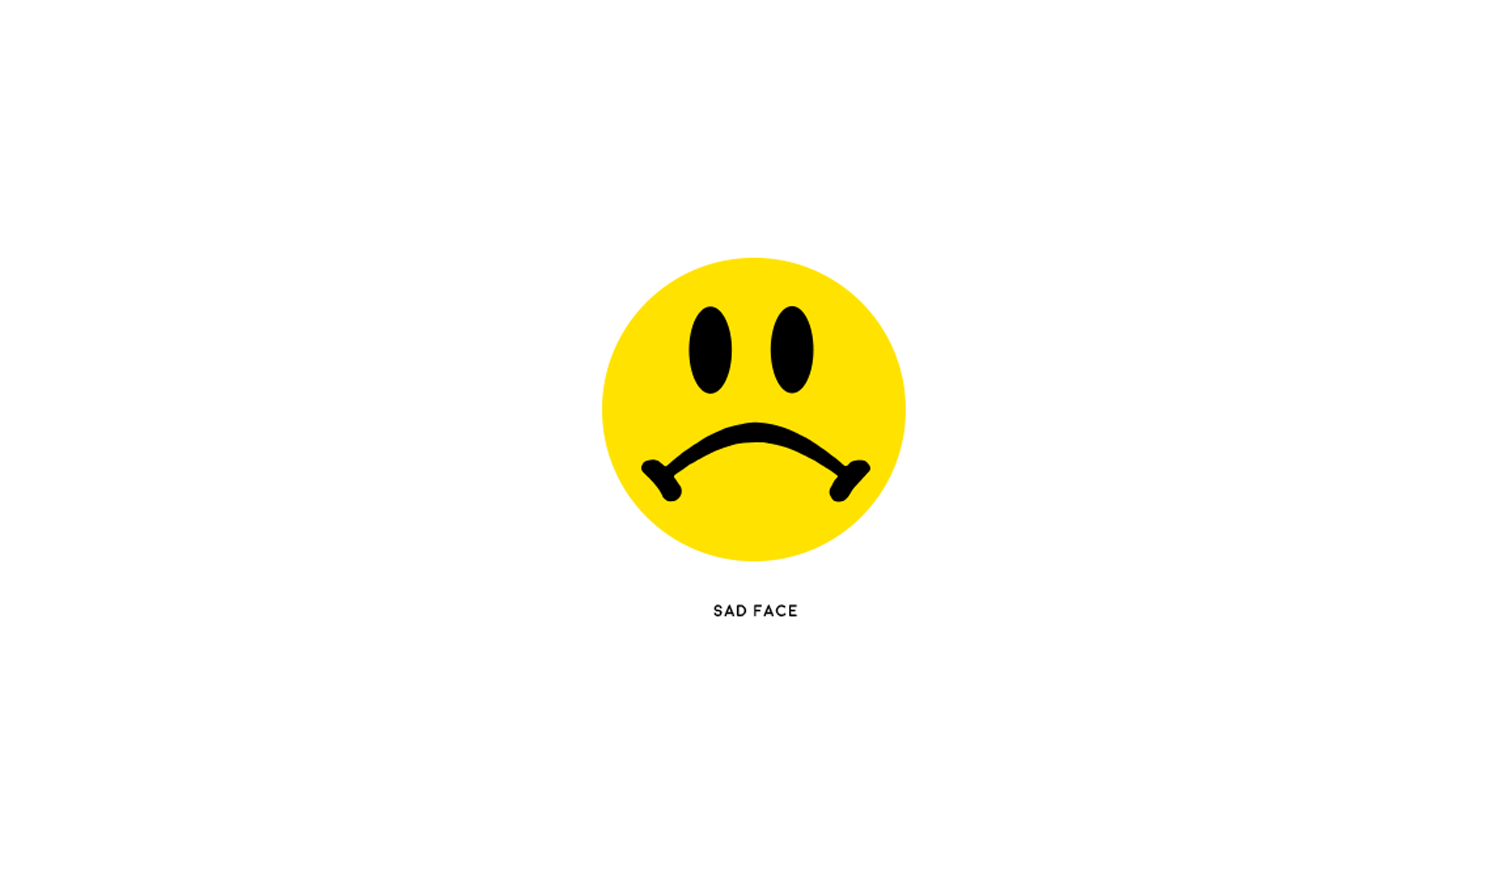 sad-face-design-by-ethan-solouki